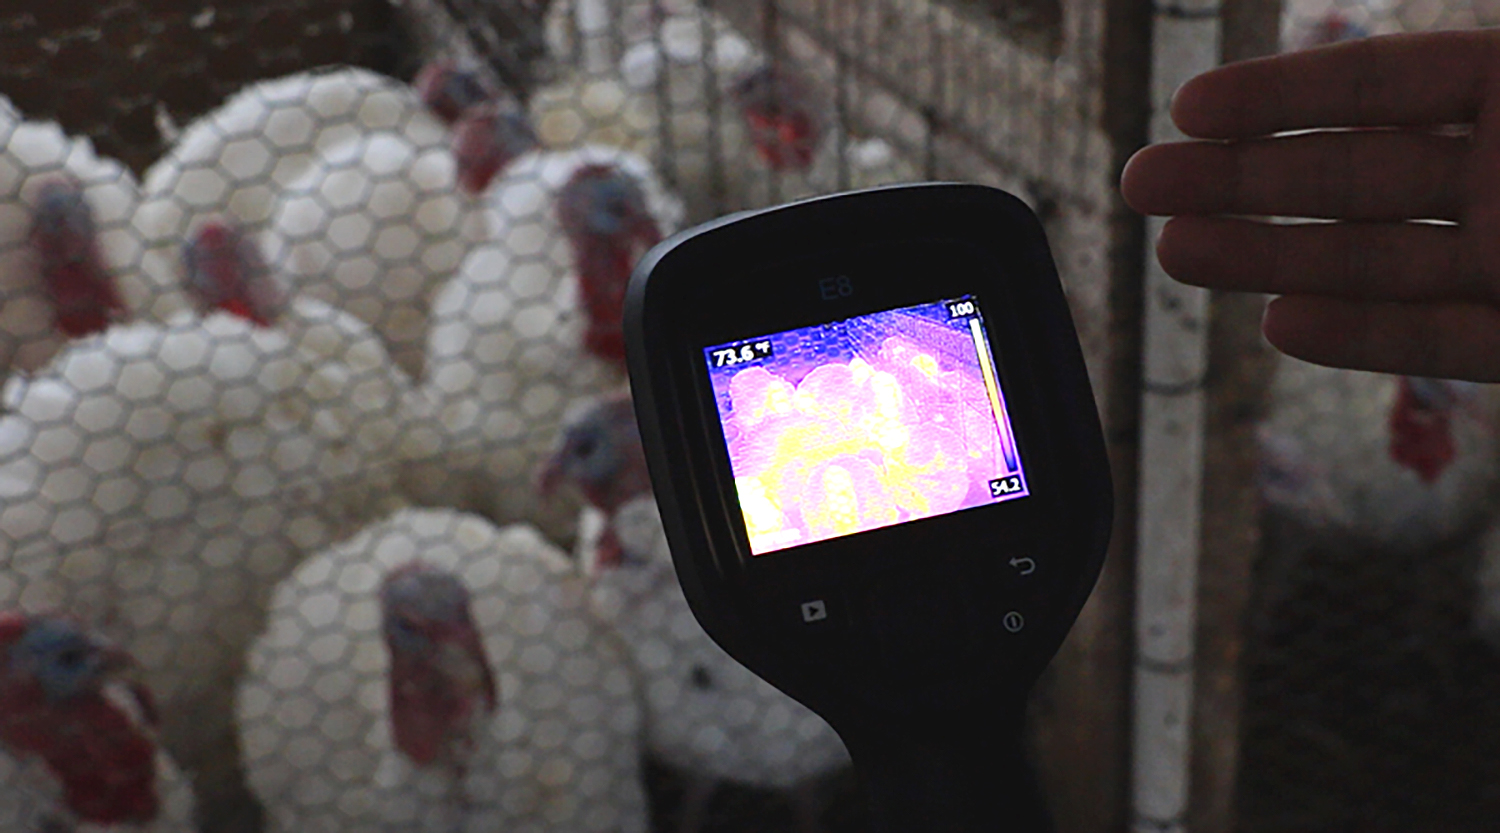 Infrared imaging camera and turkeys